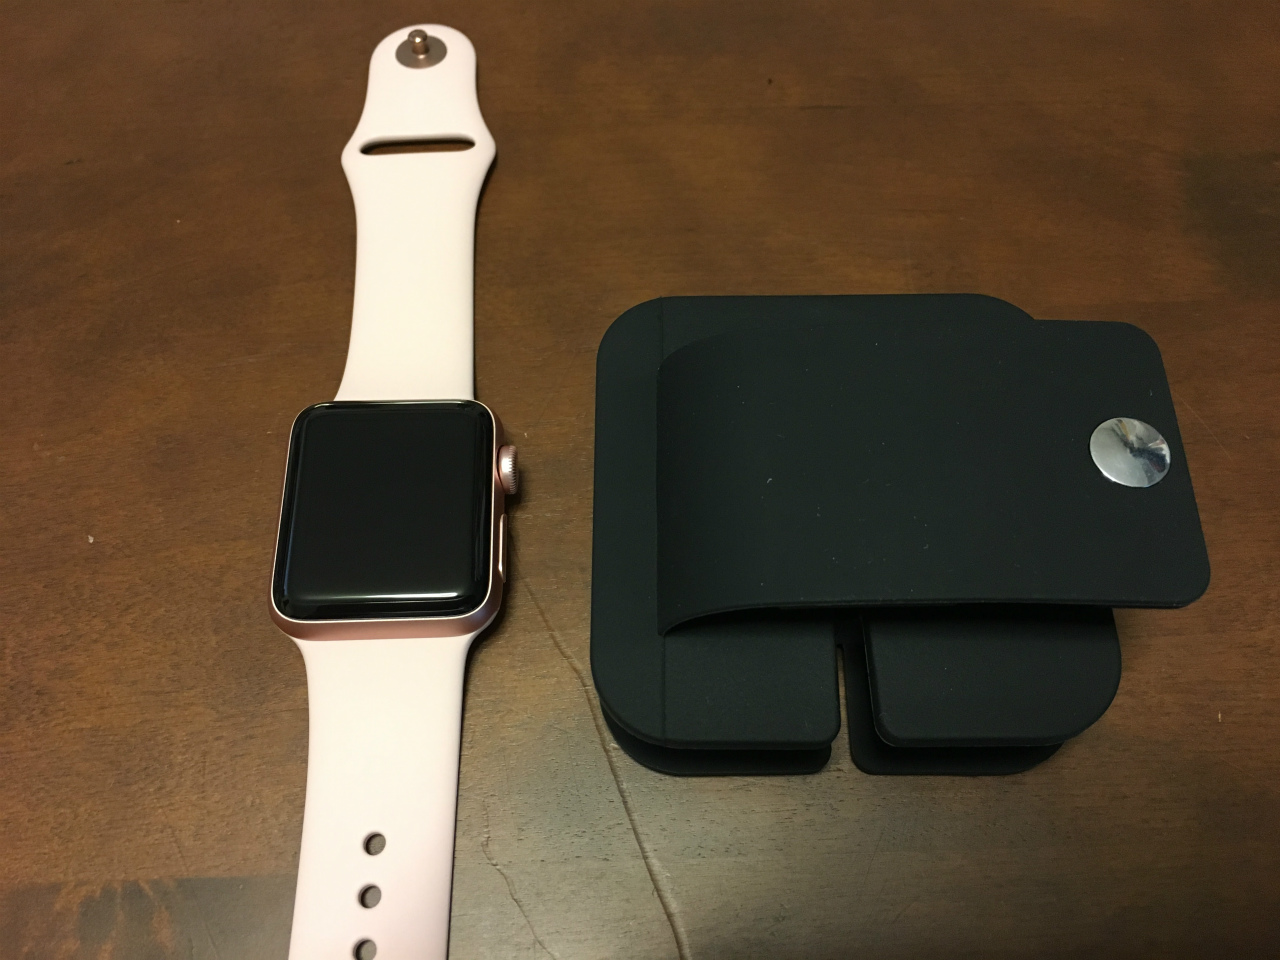 pr-primacc-apple-watch-charging-wallet-02